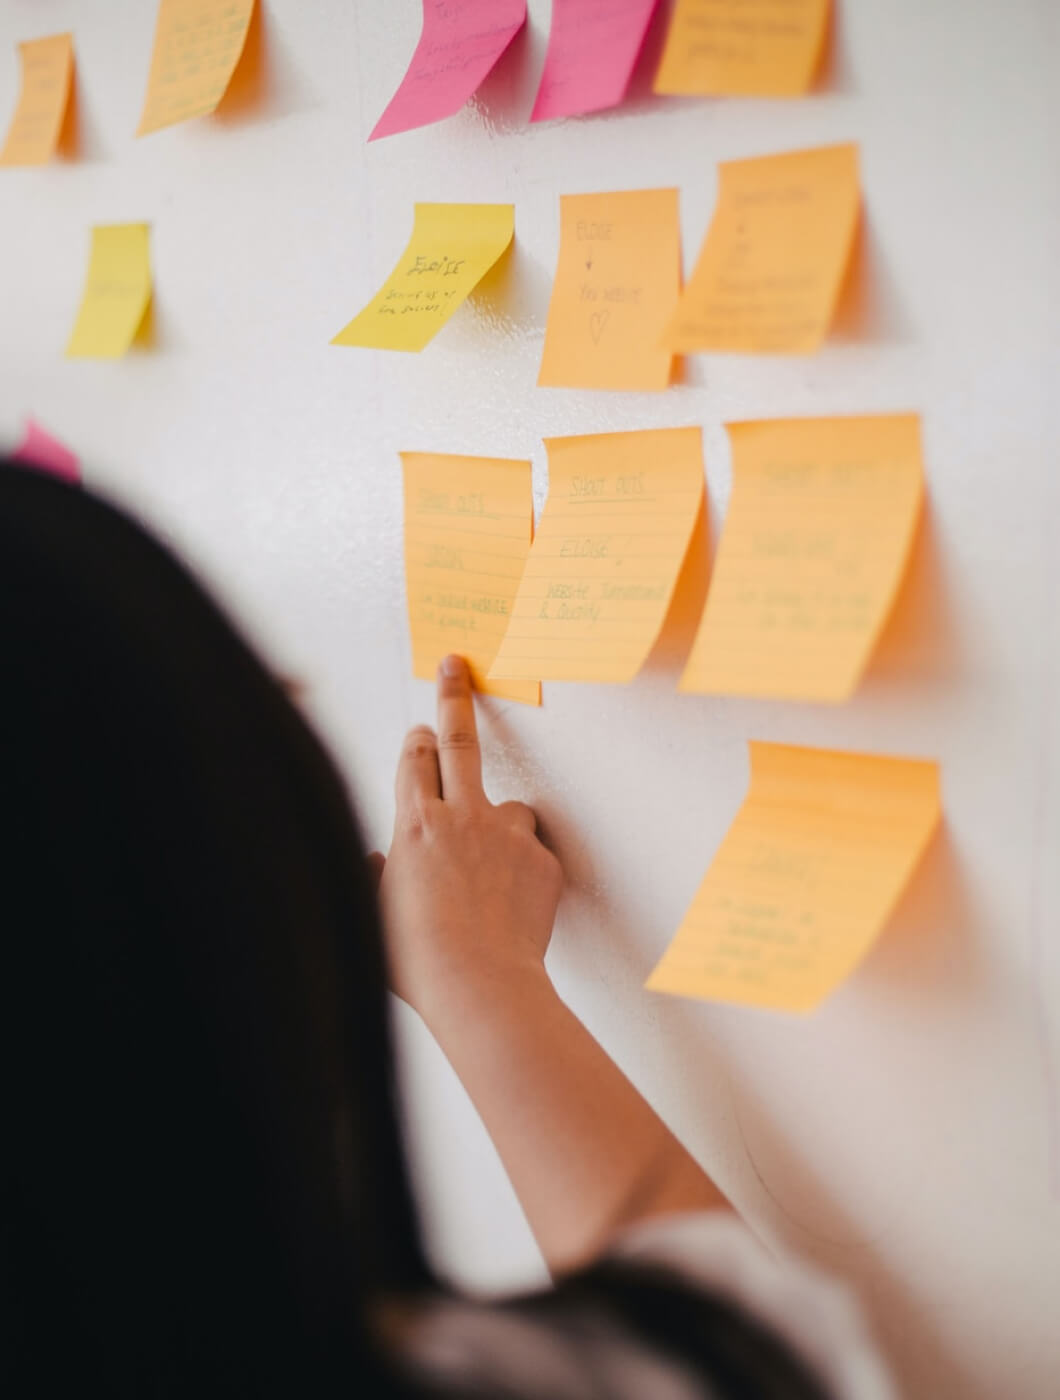 Image of sticky notes on whiteboard